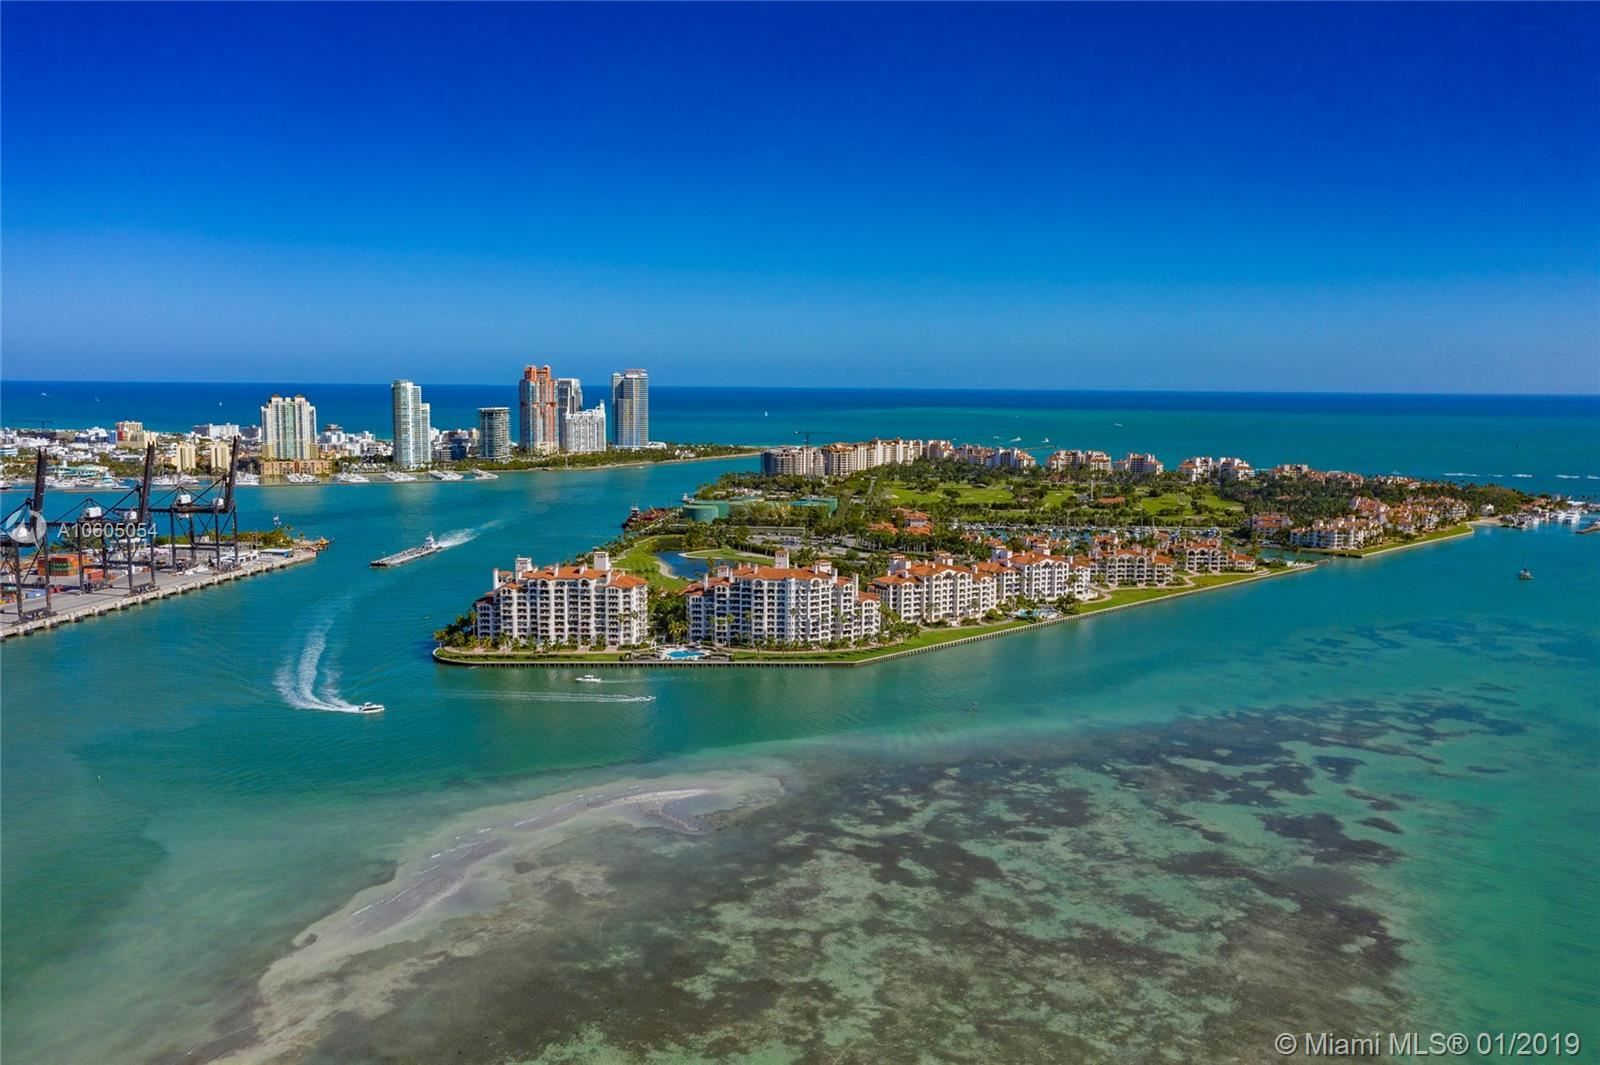 Photo 4 of Listing MLS a10605054 in 5203 Fisher Island Drive #5203 Miami FL 33109